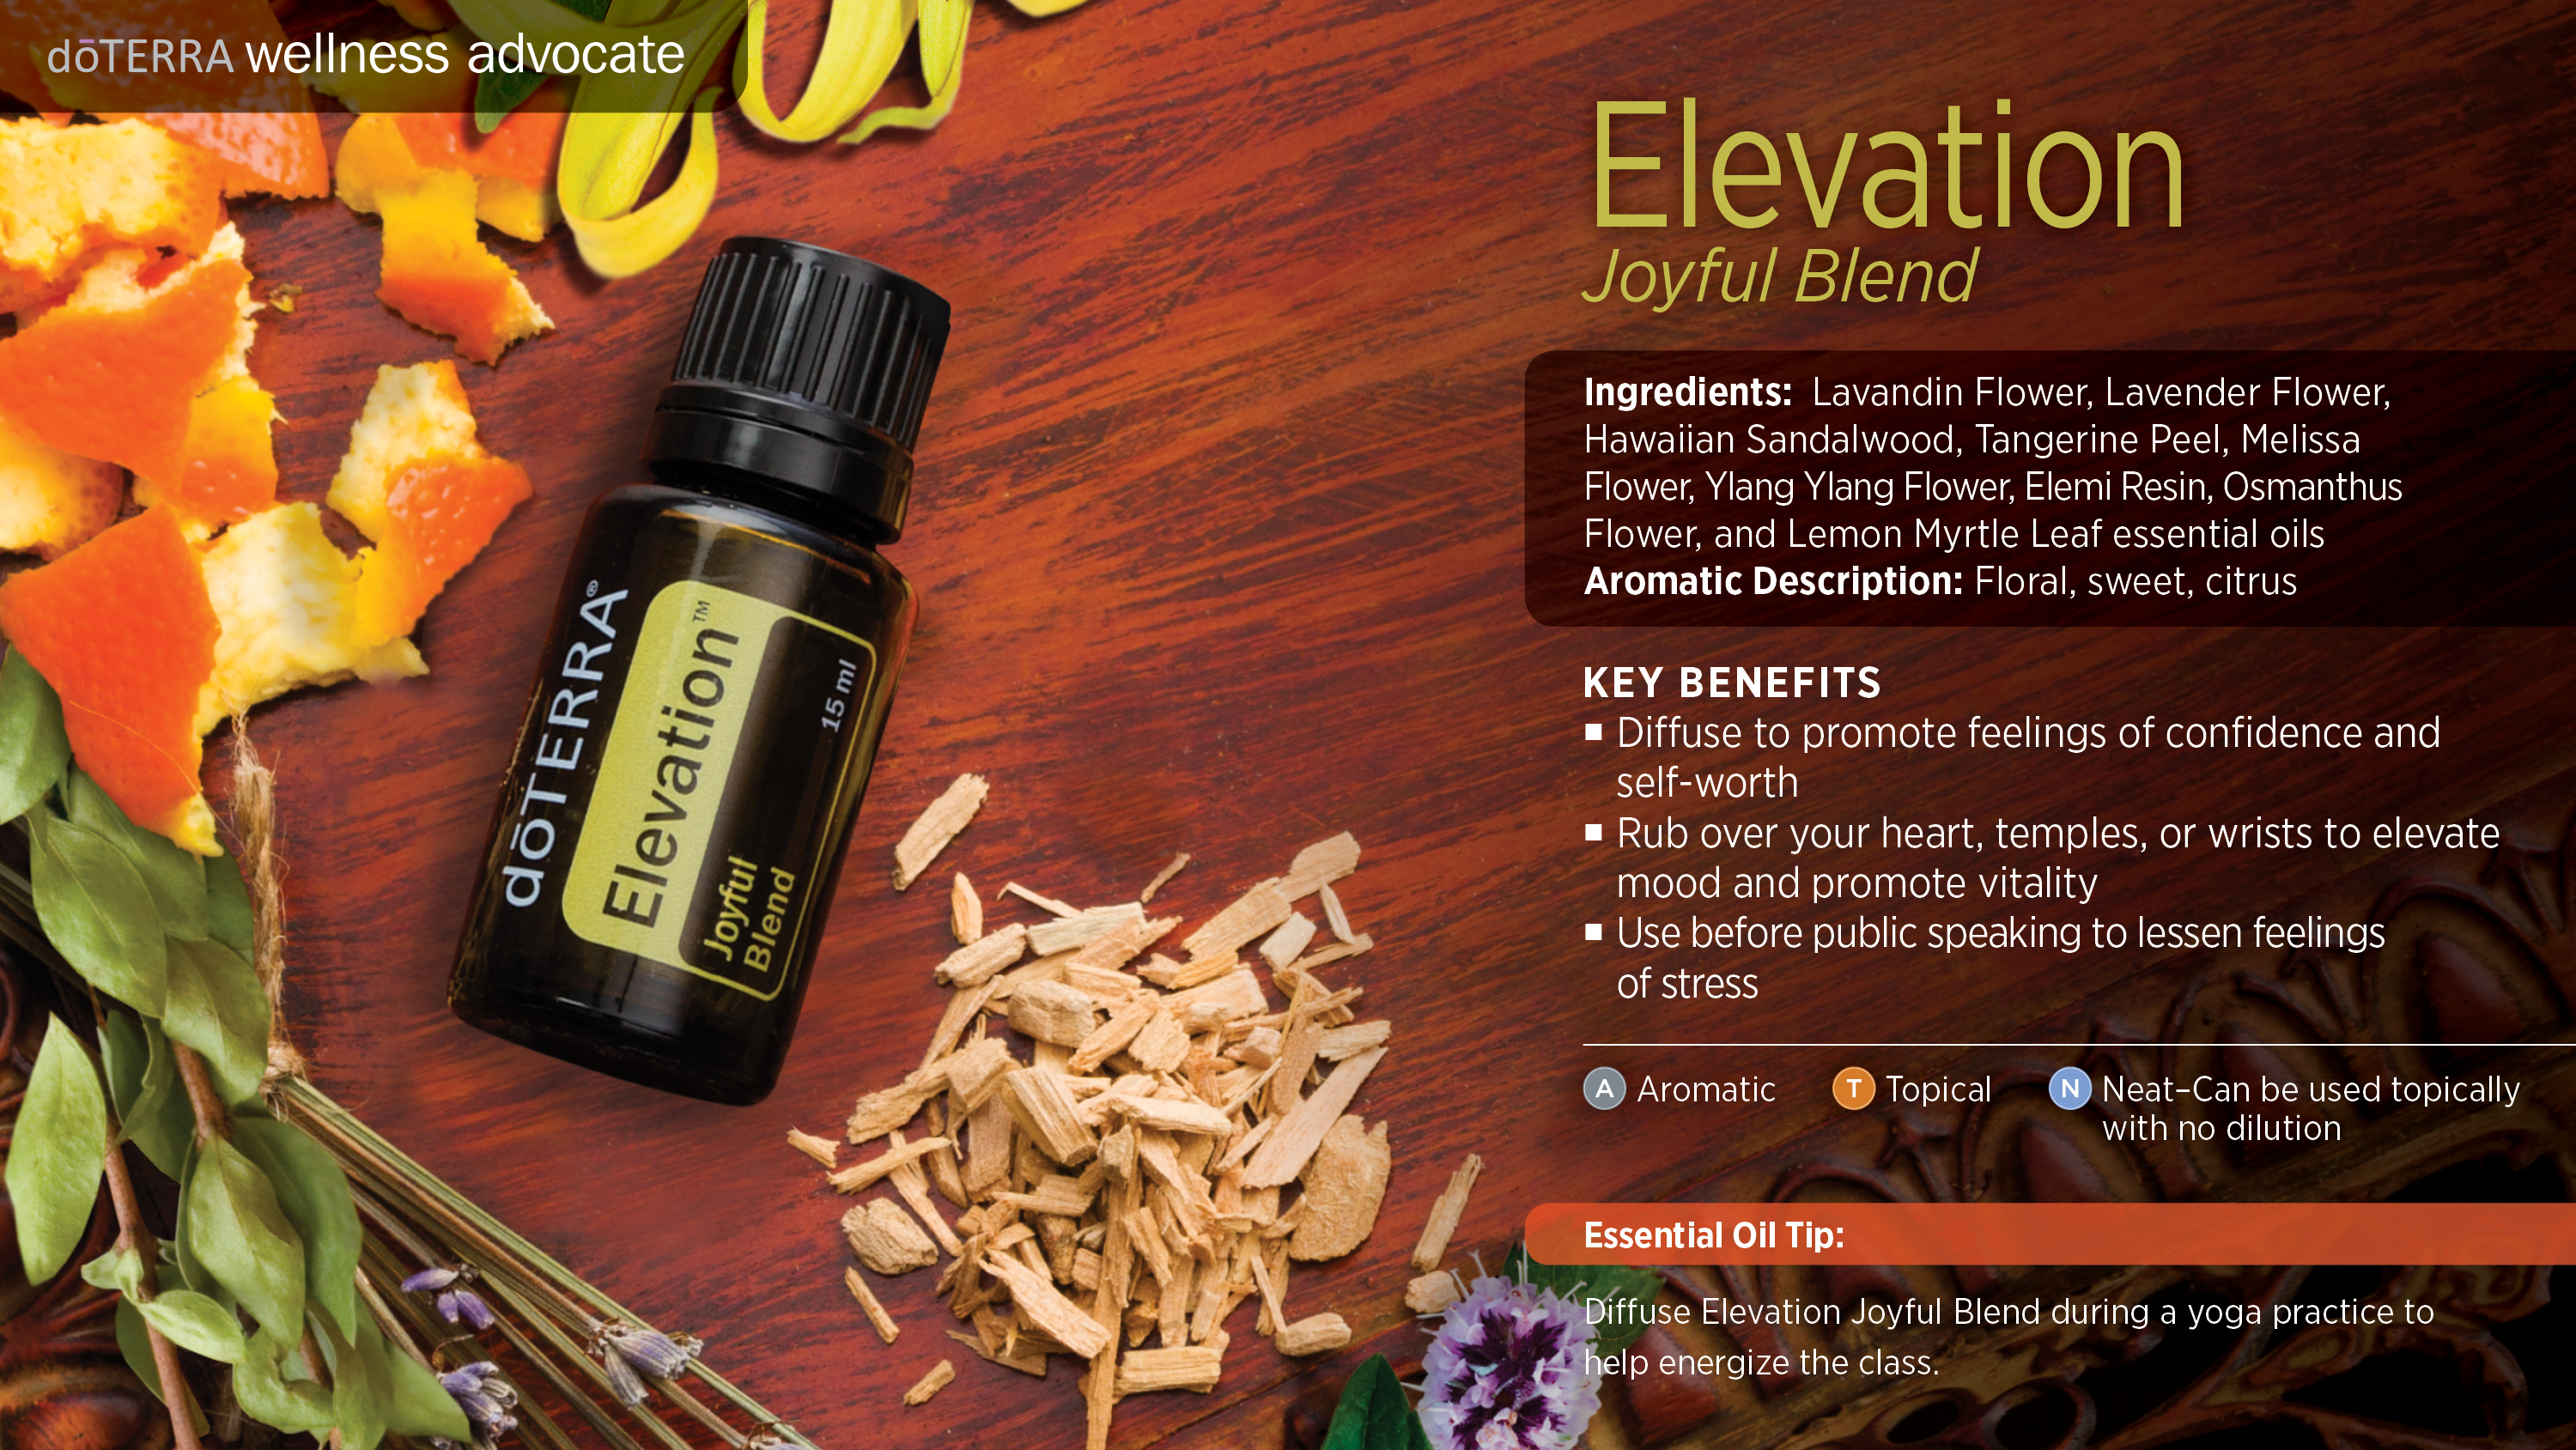 doTERRA Elevation Joyful Blend Uses - Best Essential Oils